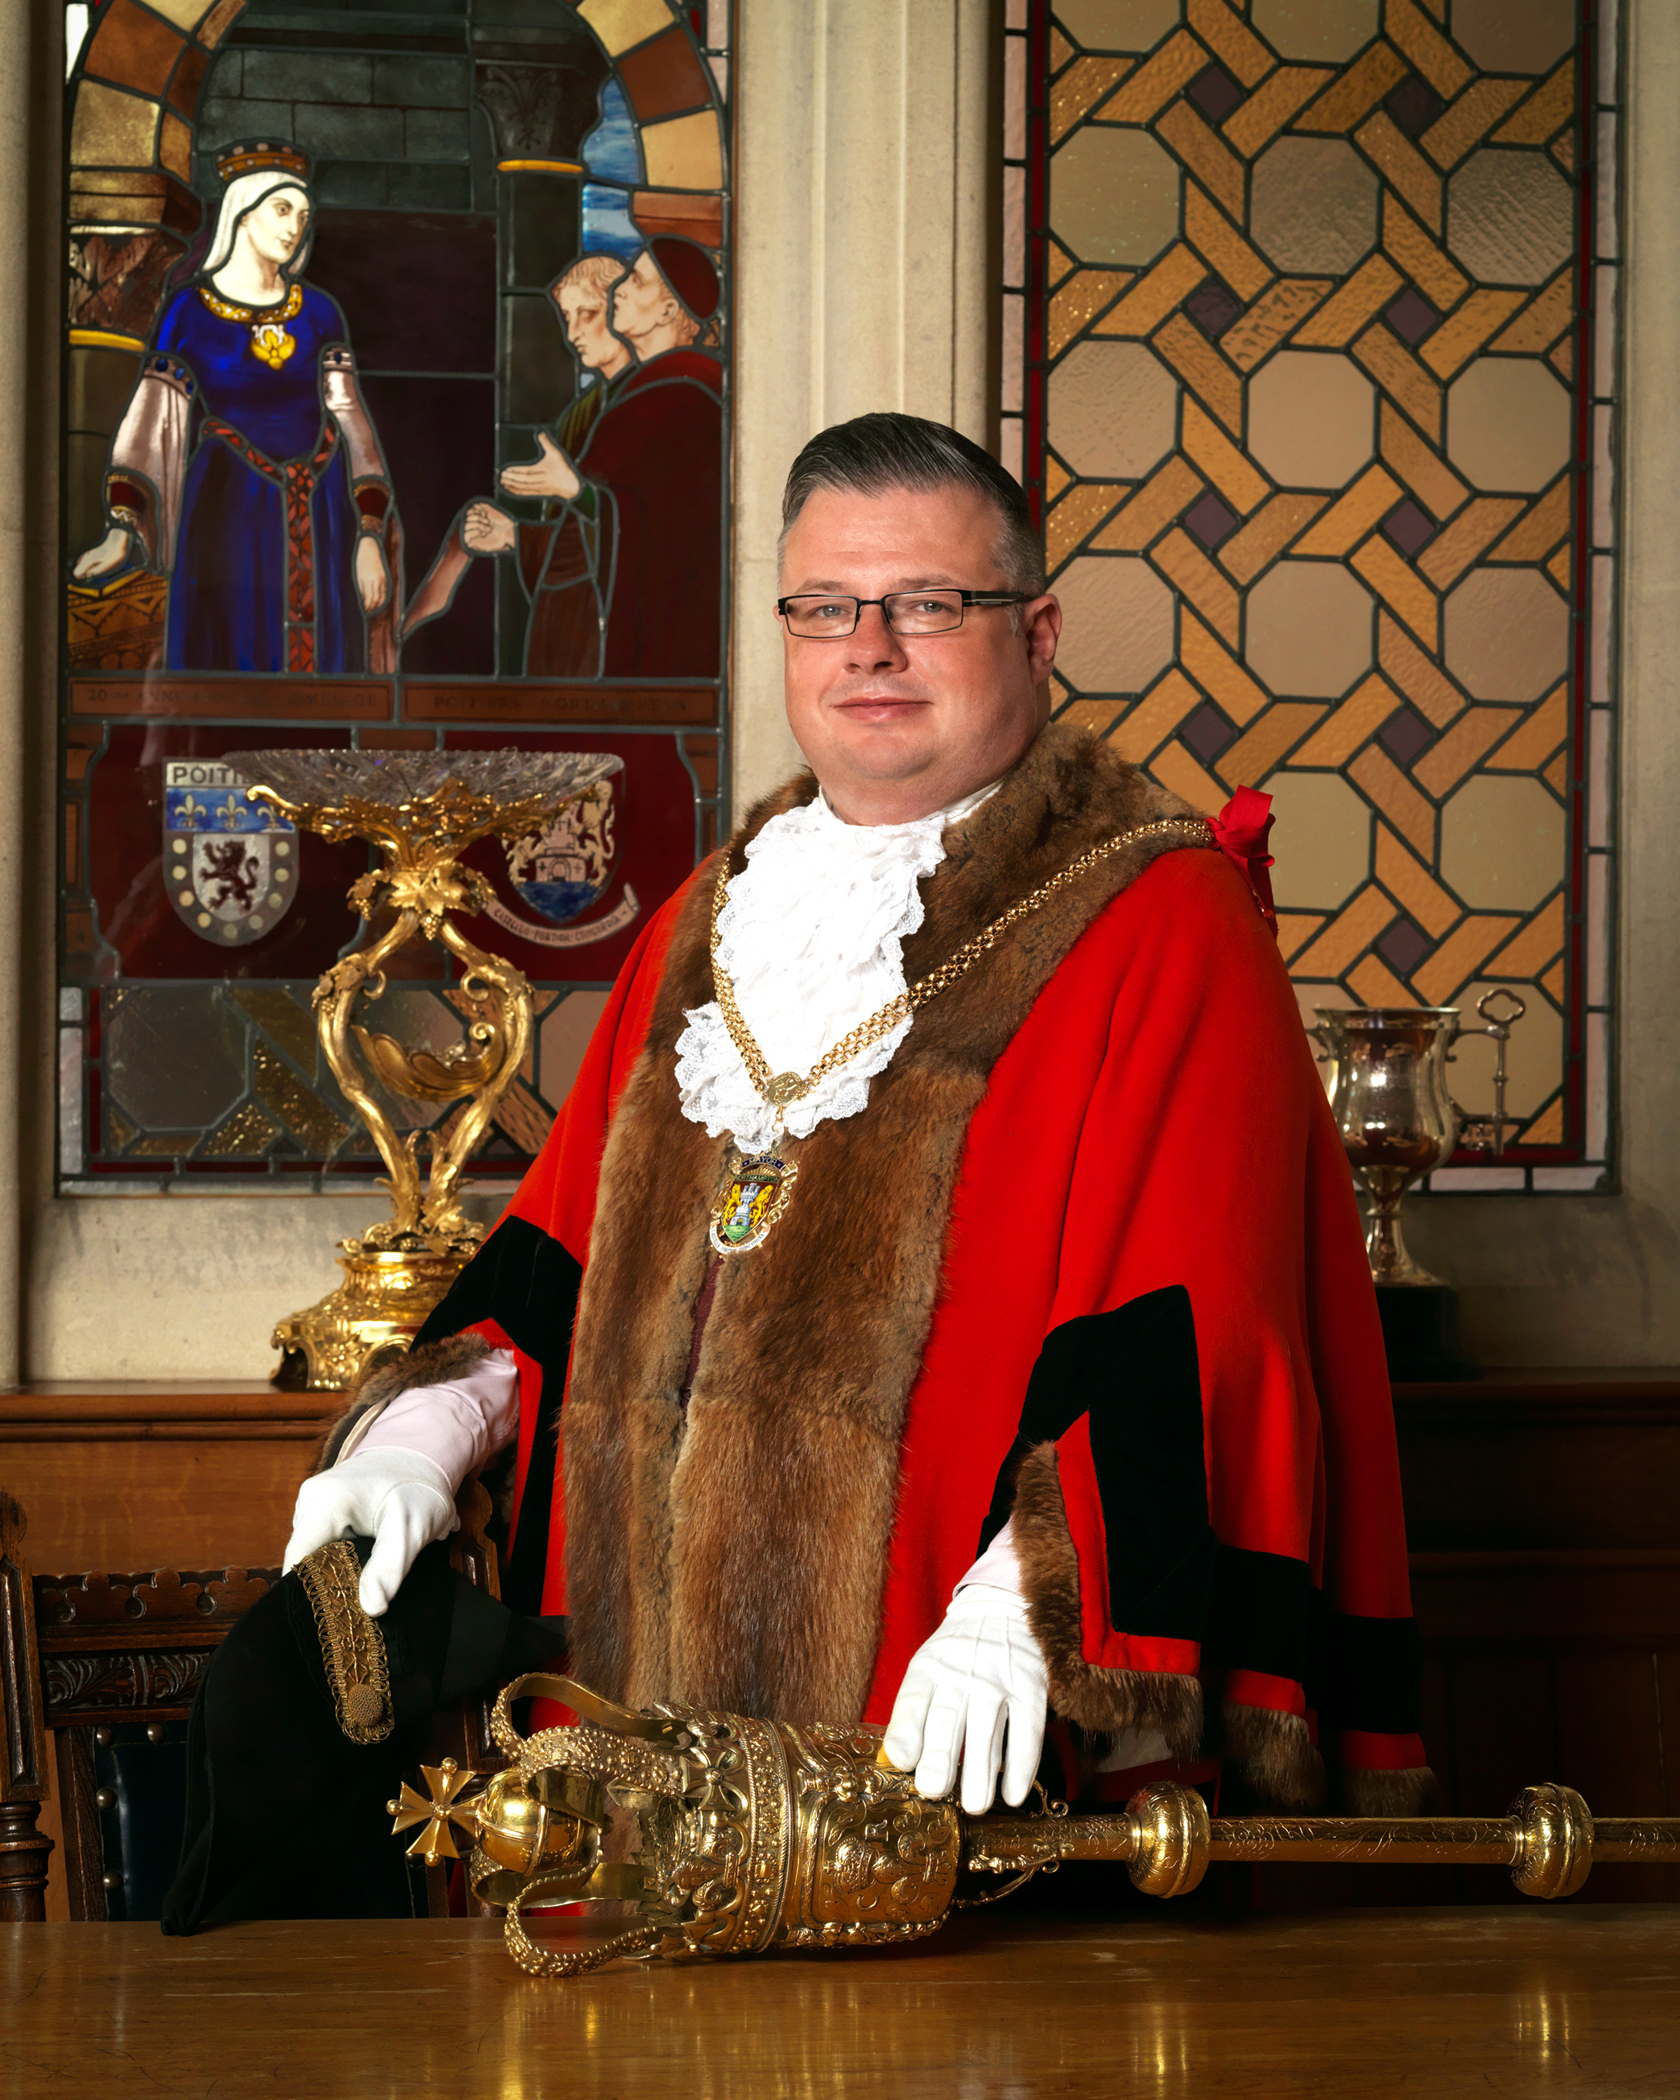 Gareth Eales, Mayor of Northampton 2017 - 2018